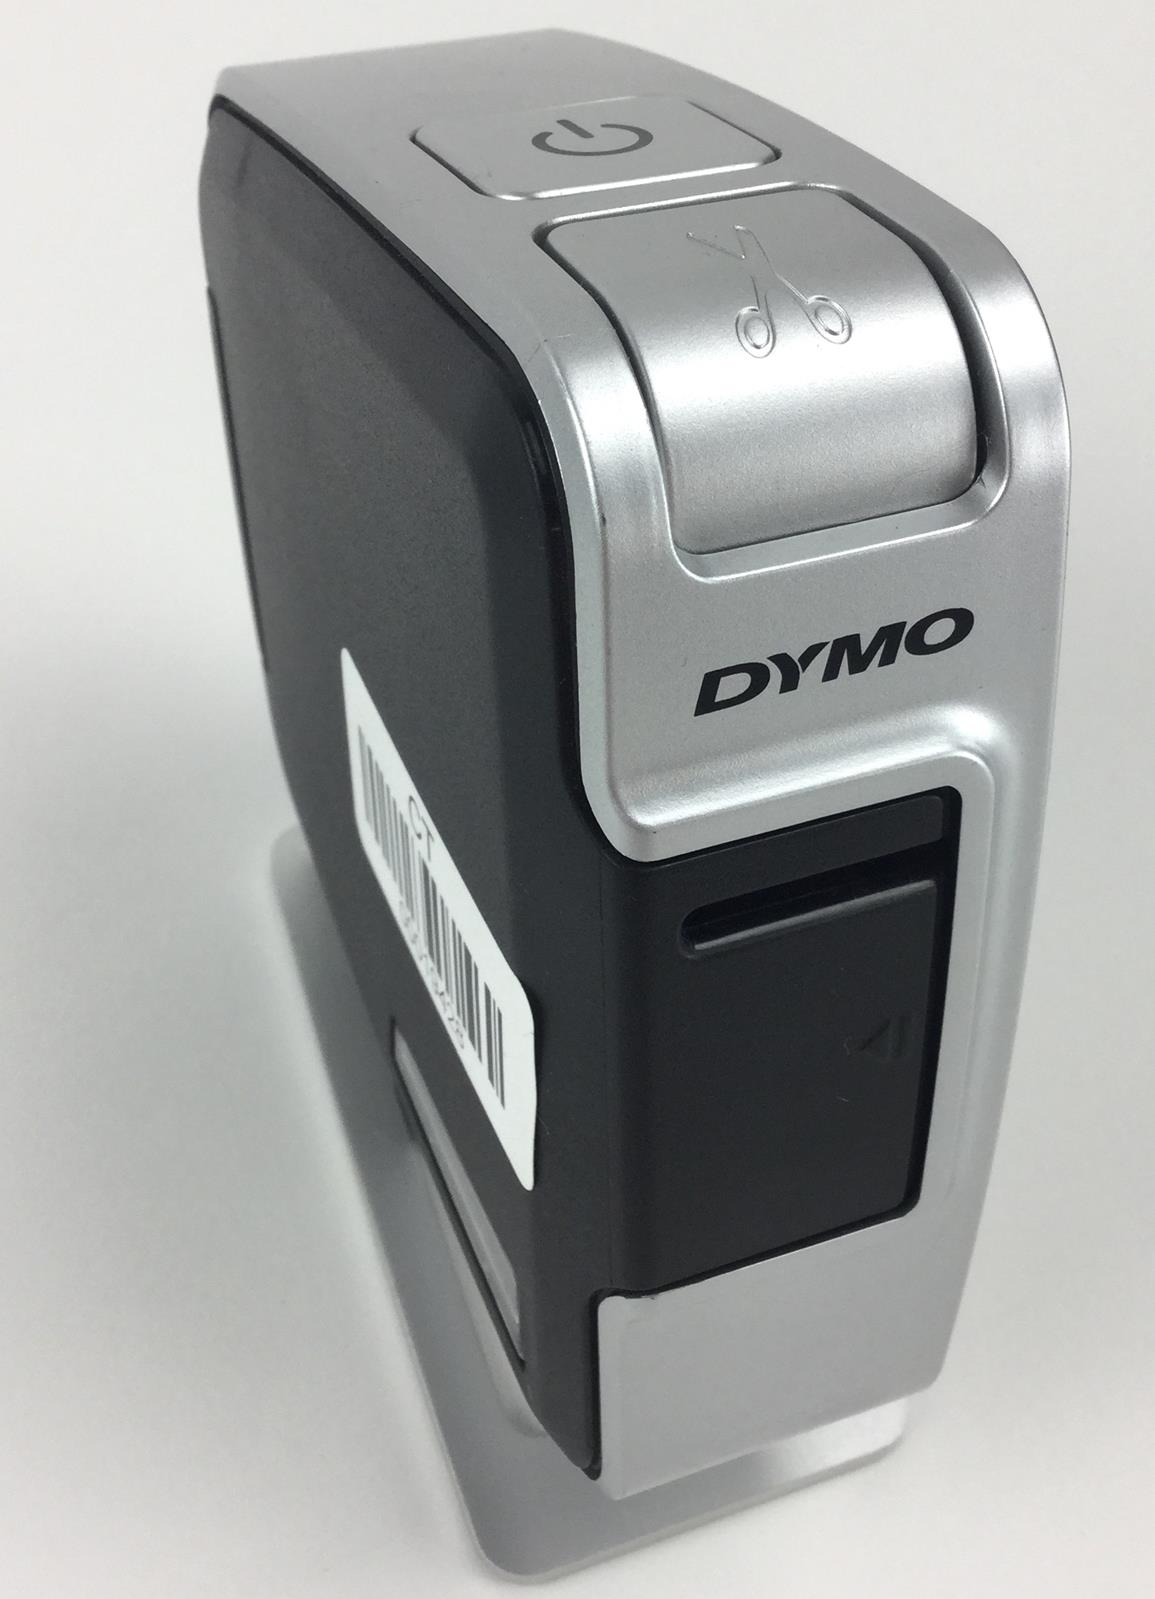 Details about Dymo LabelManager PnP Label Maker/Thermal Printer for PC or  Mac - No A/C Adapter